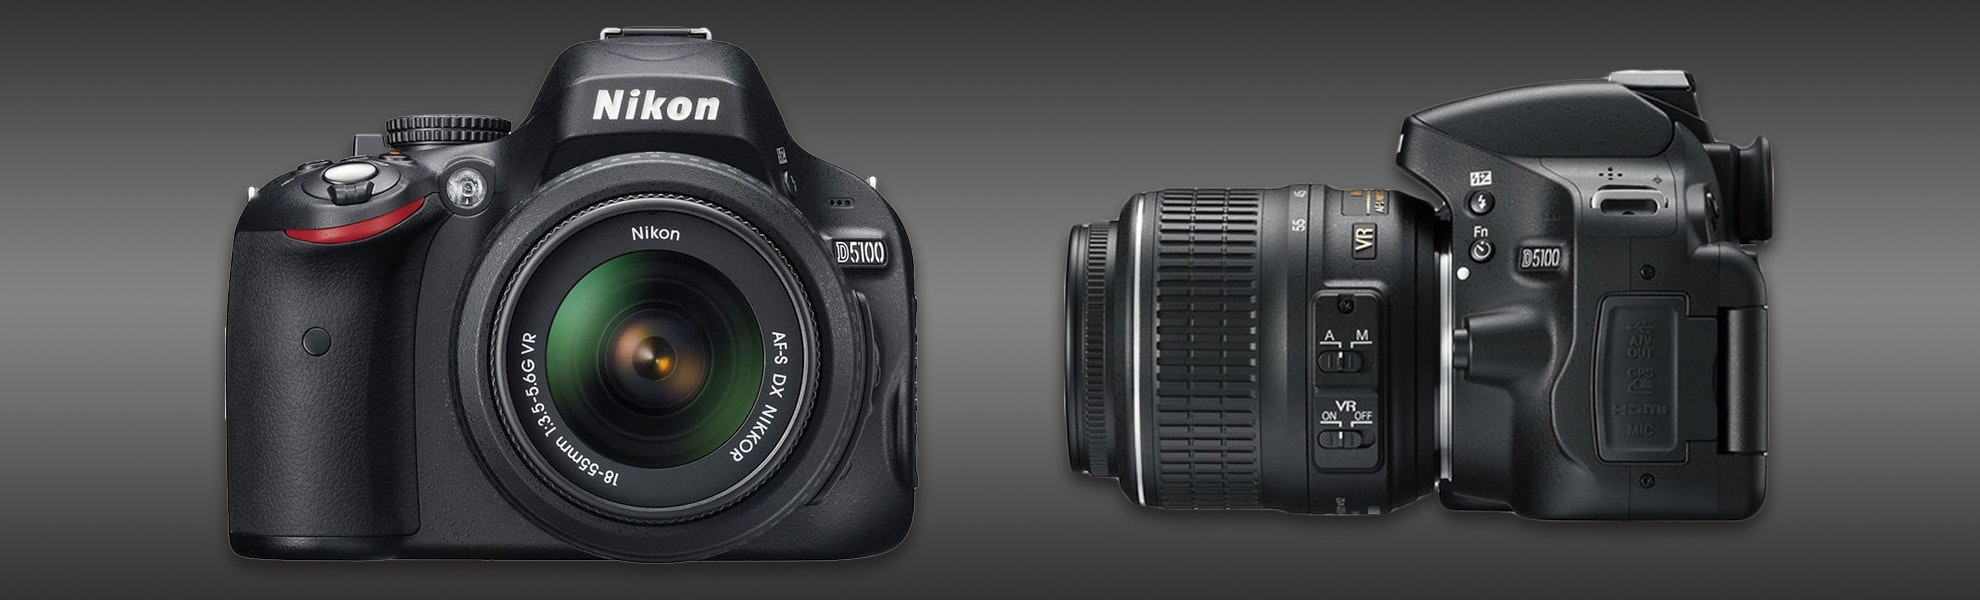 Nikon D5100 with 18-55mm VR lens